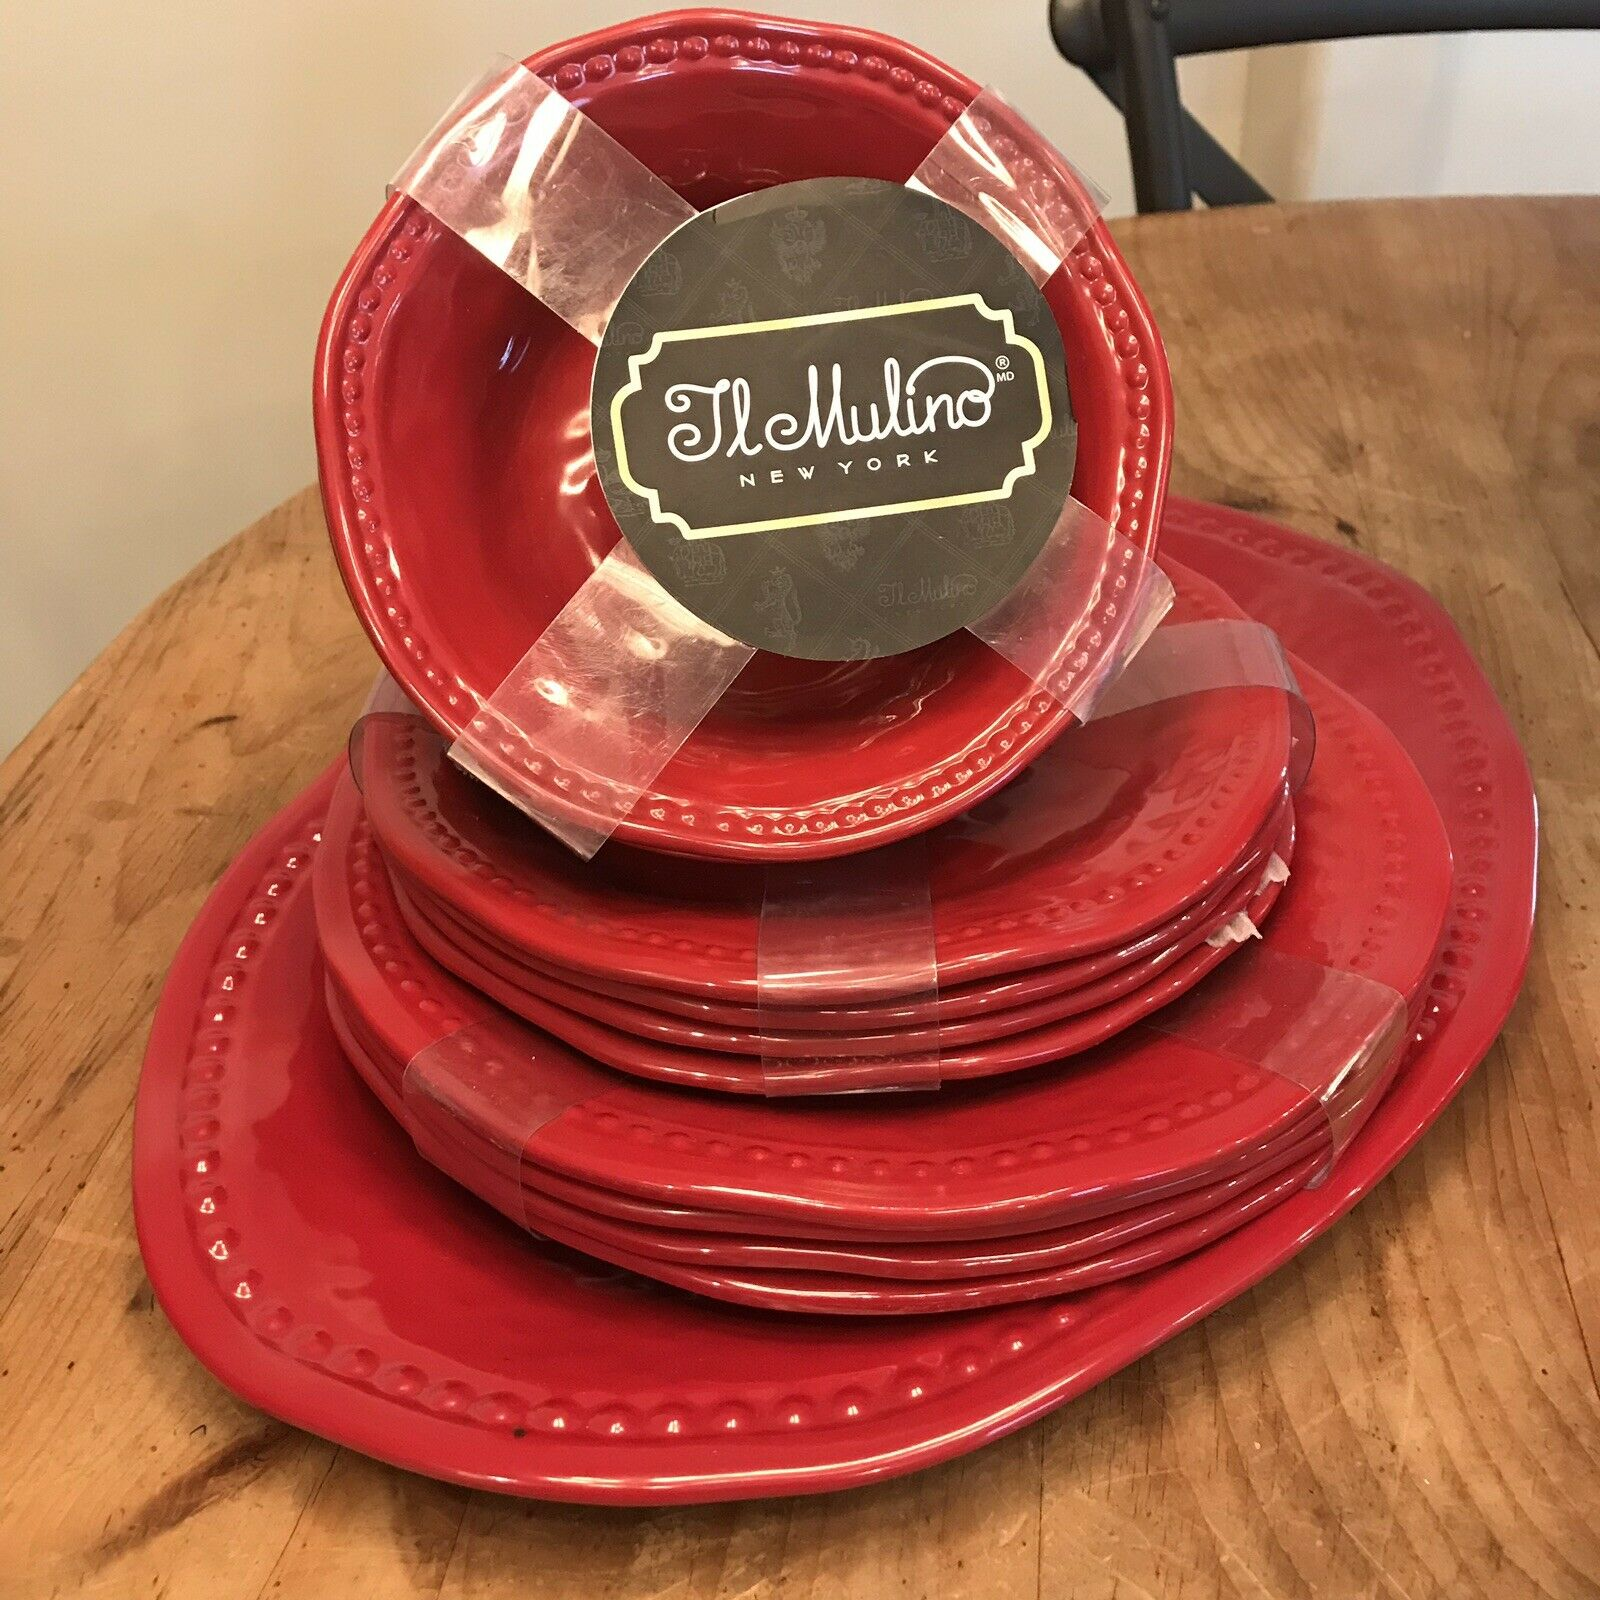 Il Mulino Red Round Hobnail Dinner Salad Plates Cereal Bowls 13-PC Platter Set